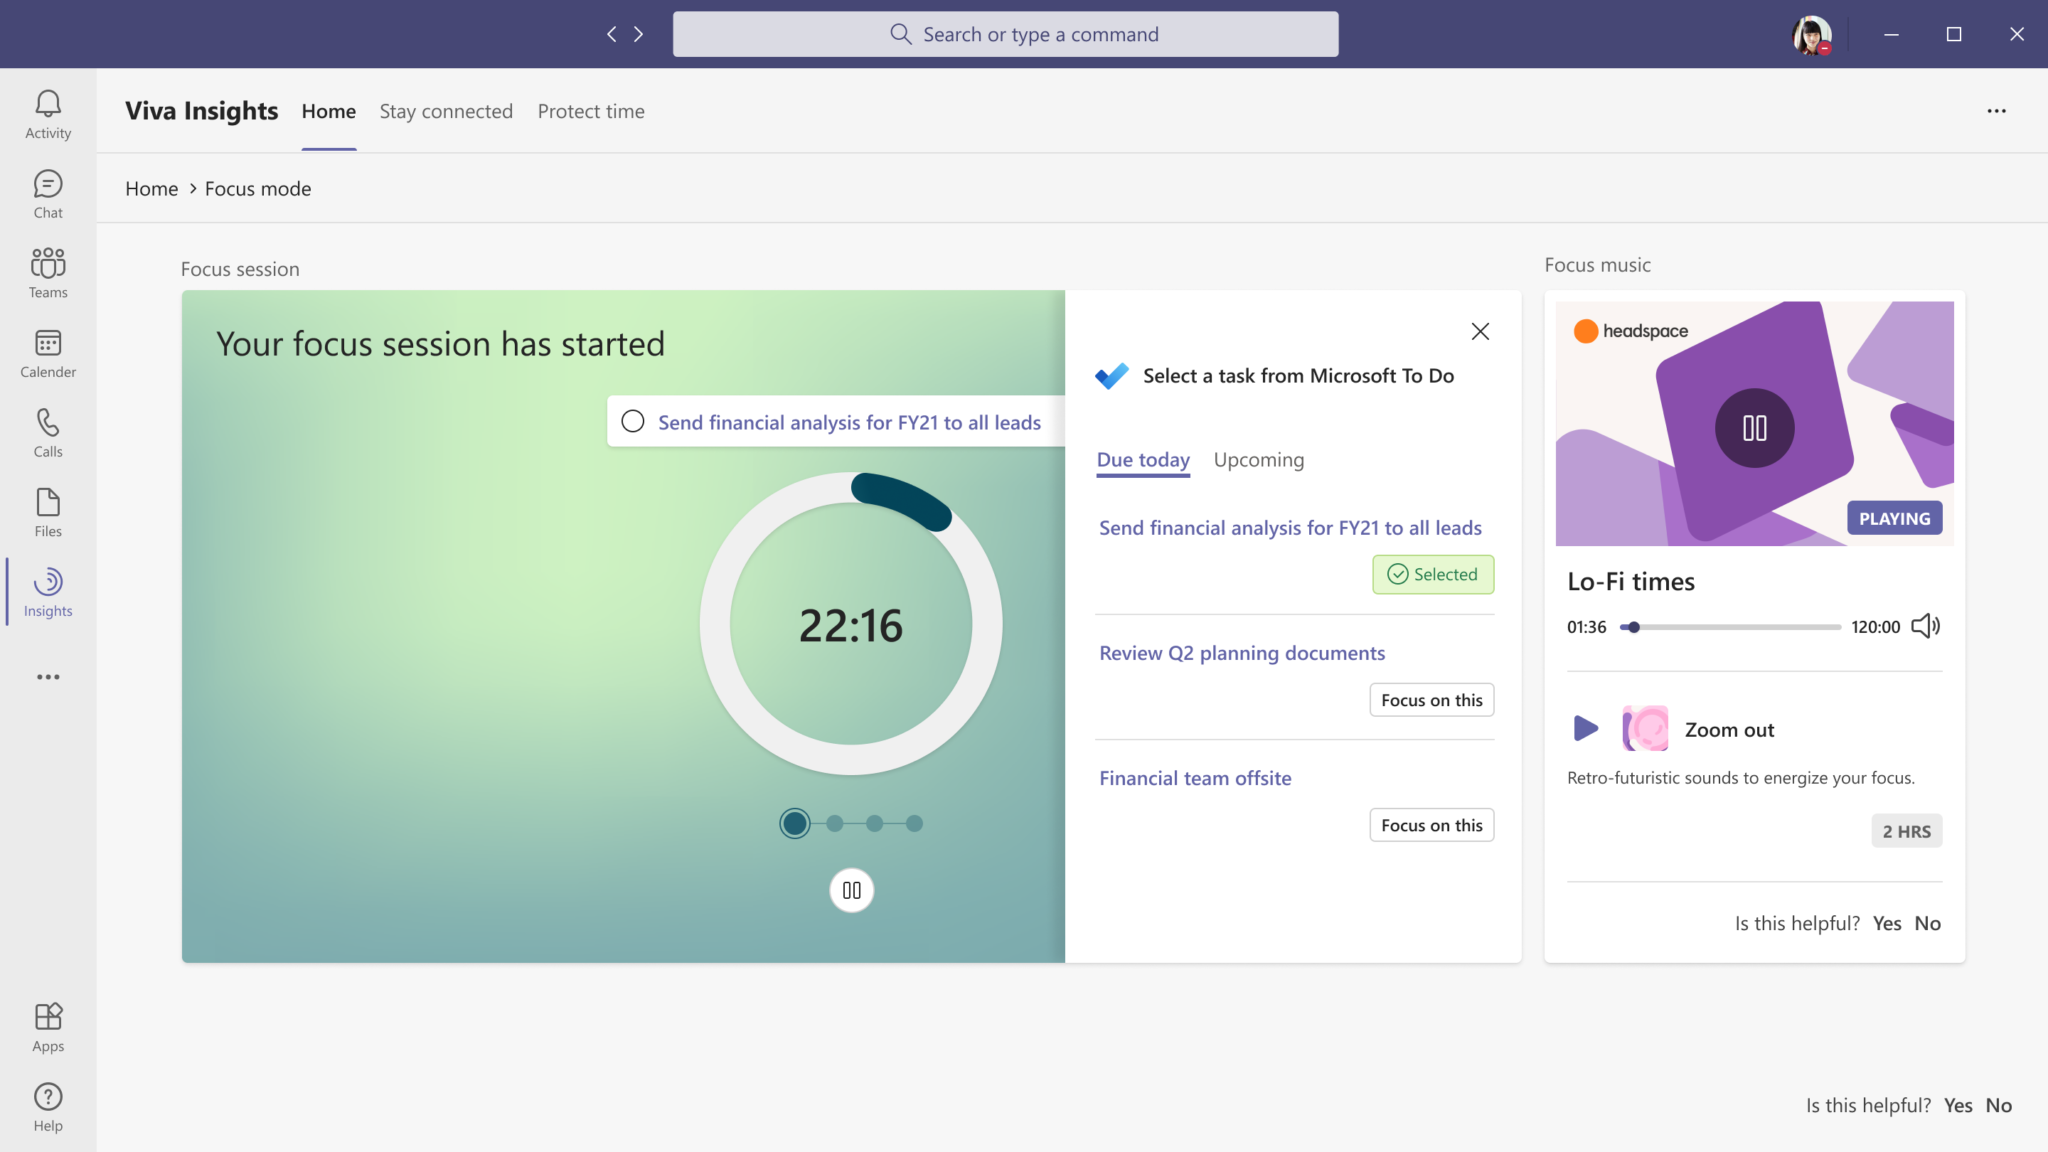 Viva Insights in Microsoft Teams to support hybrid work